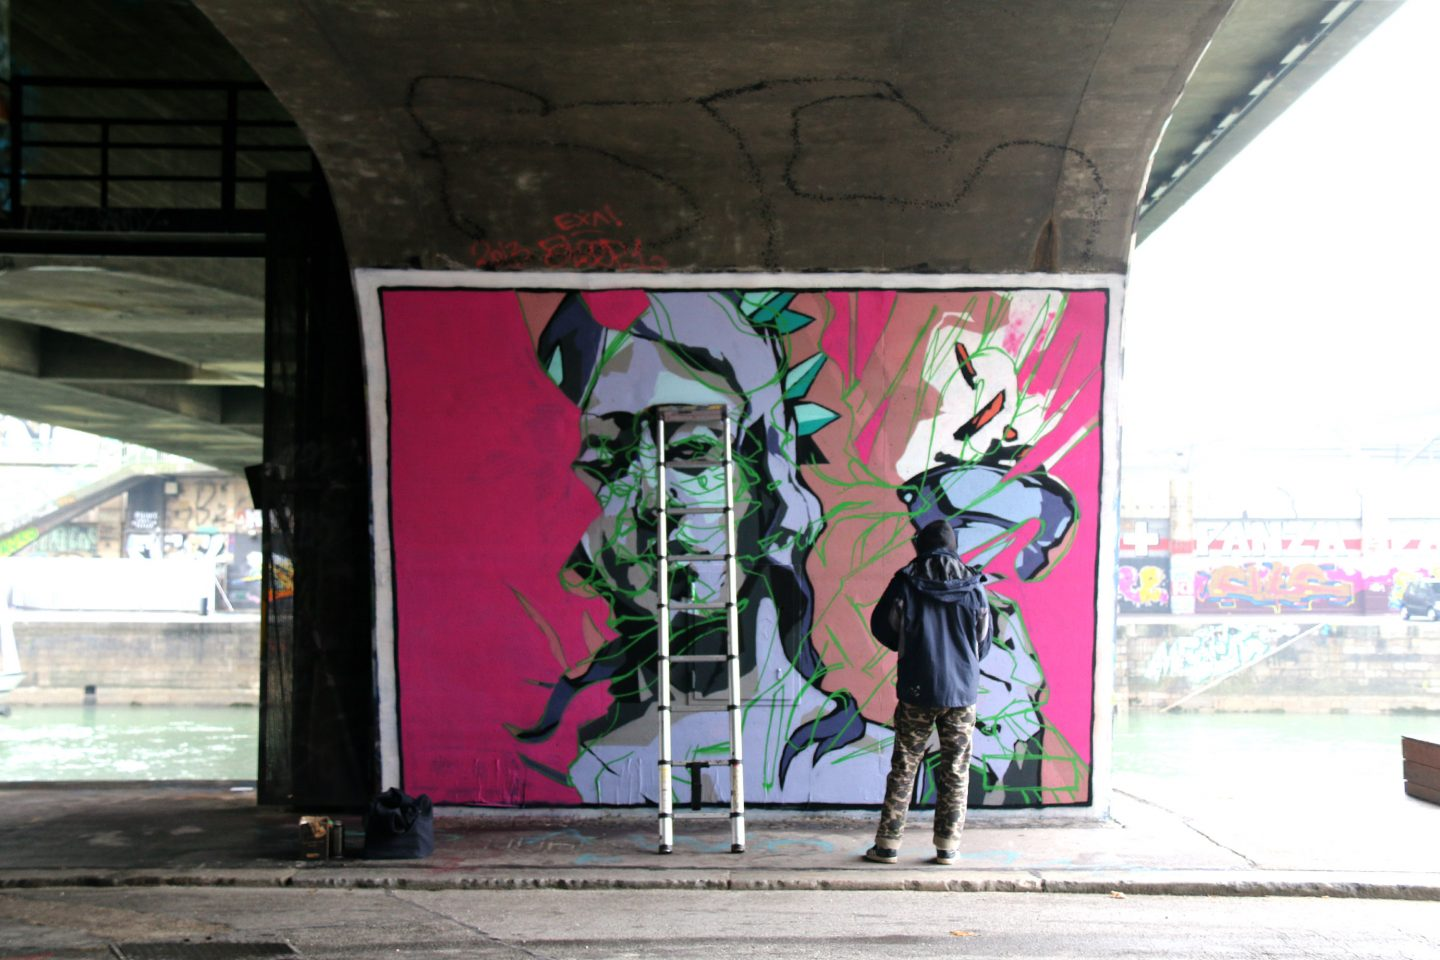 Vienna street art by the canal 13